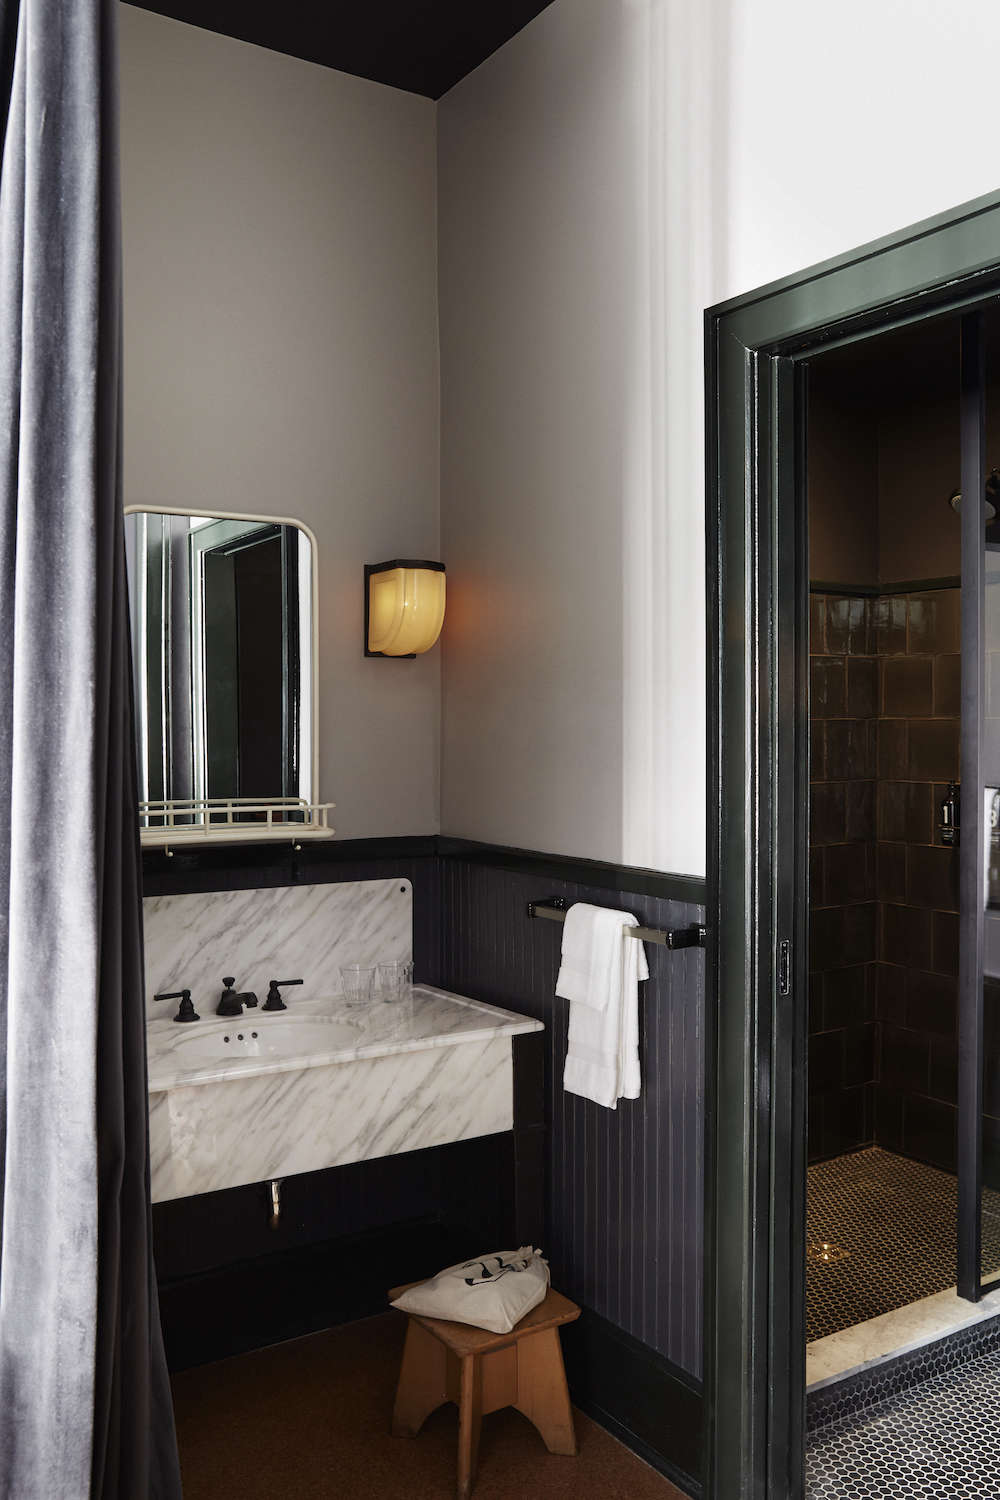 Hotels lodging the ace hotel in new orleans remodelista for Design hotel new orleans